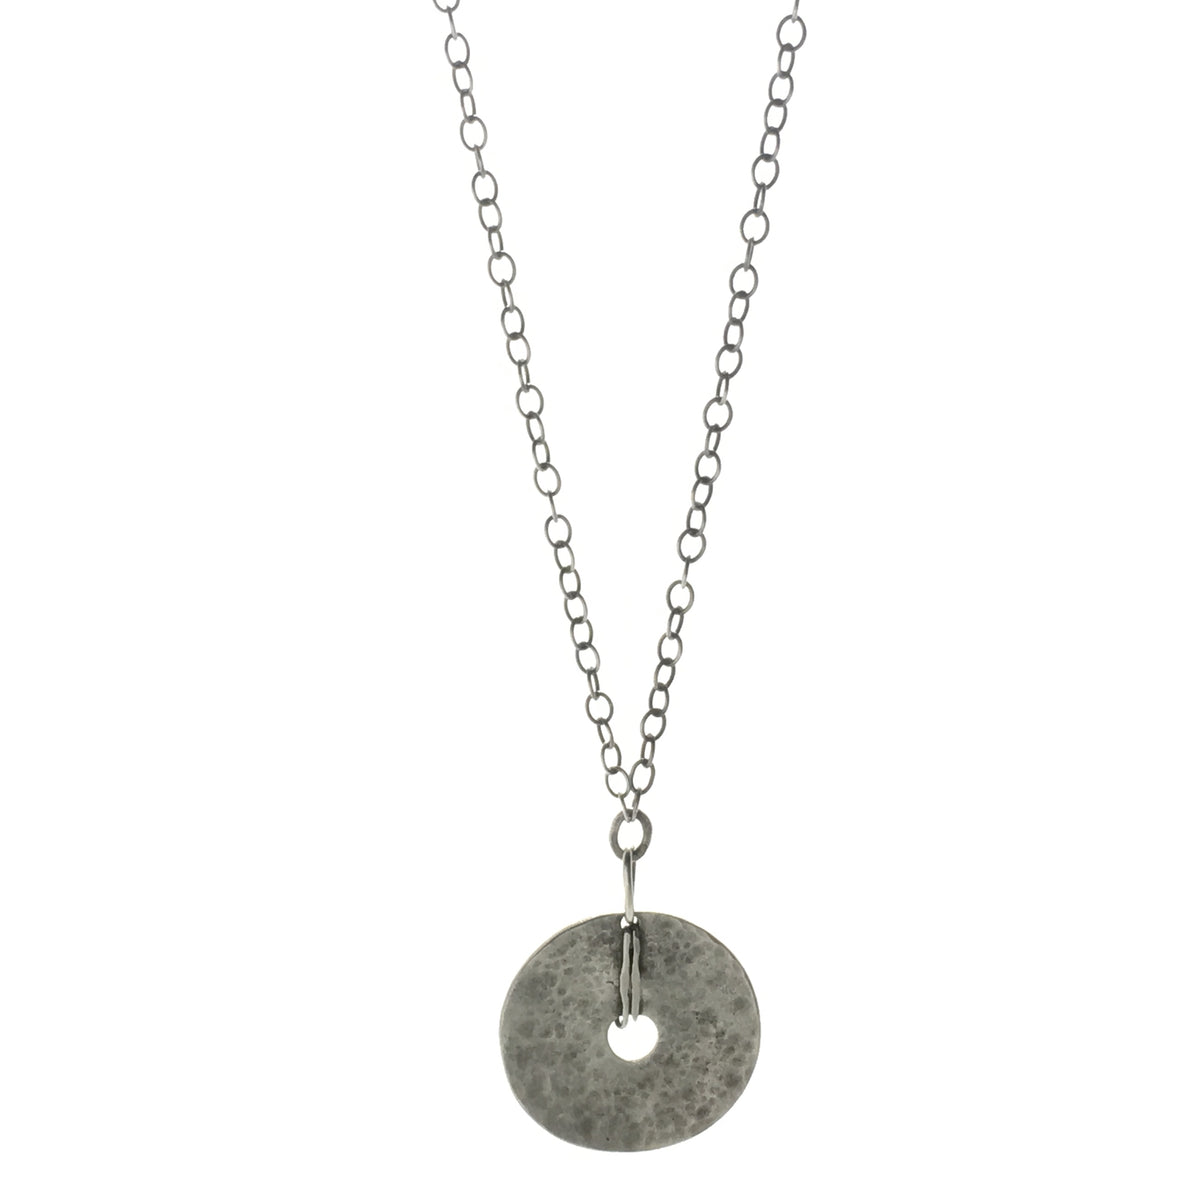 Large Hammered and Oxidized Disc Pendant - Cynabar Boutique